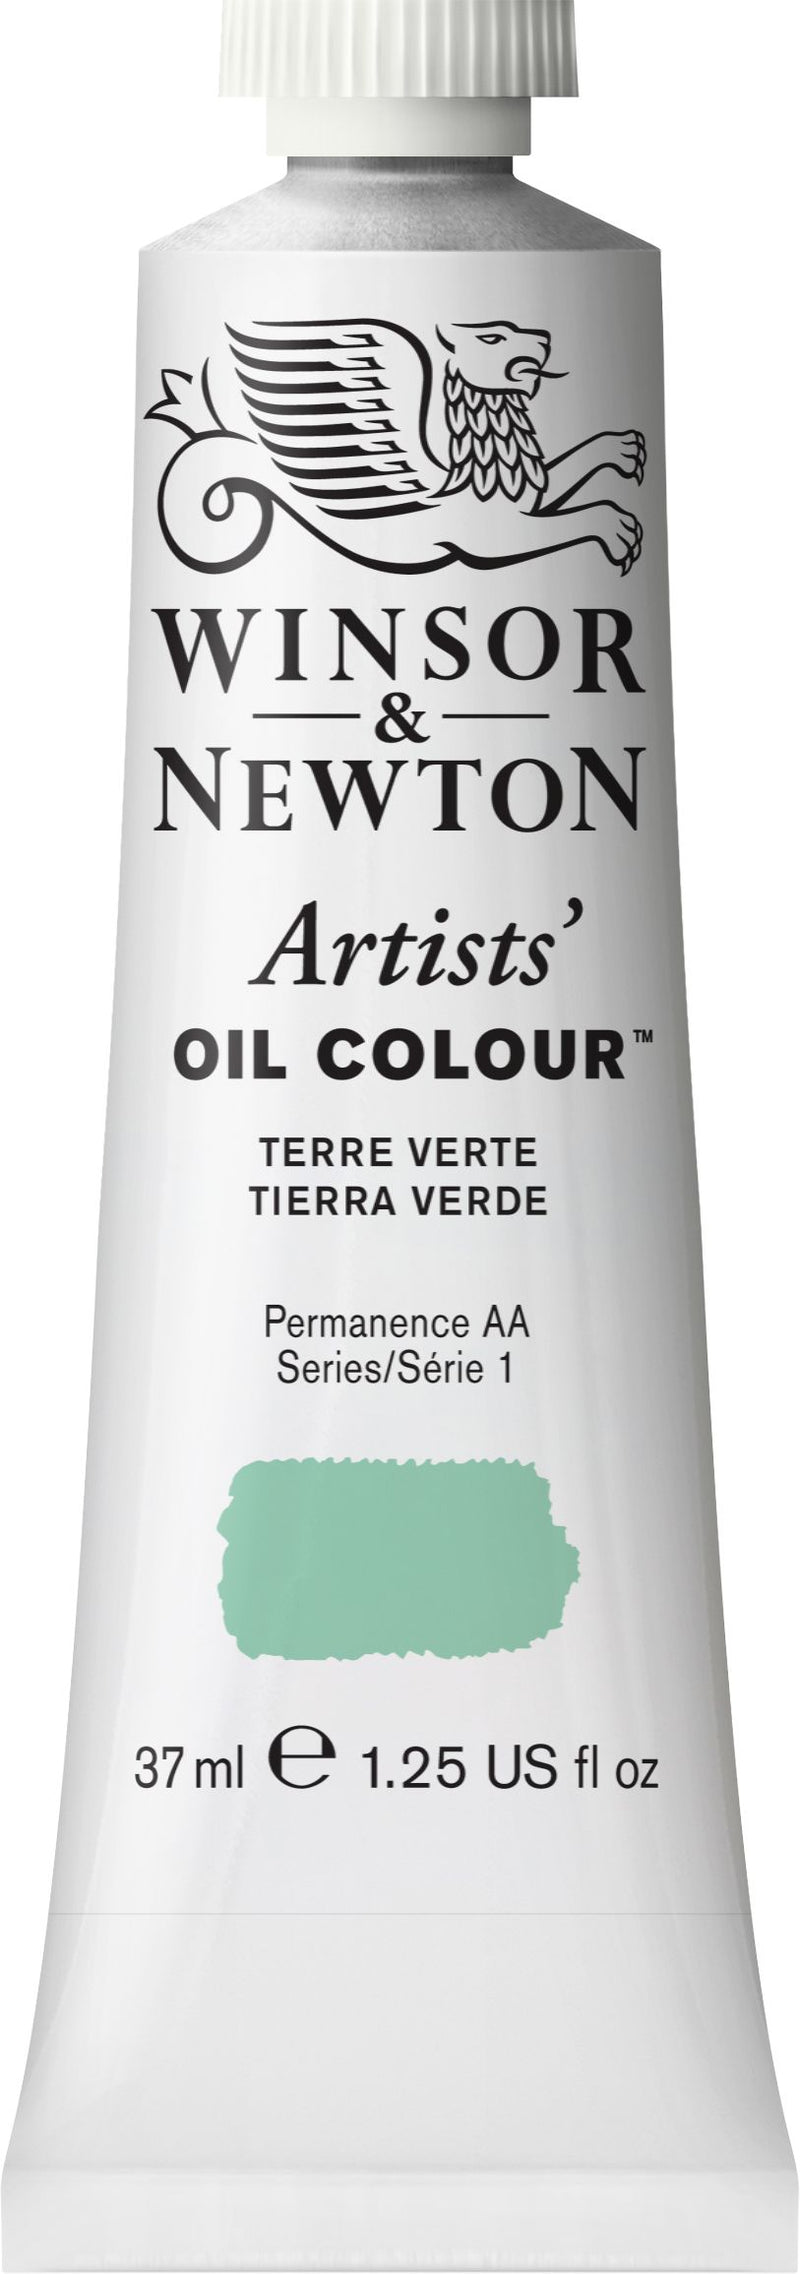 Winsor Newton Artist Oil Terre Verte 637 - Series 1 - 37ml tube